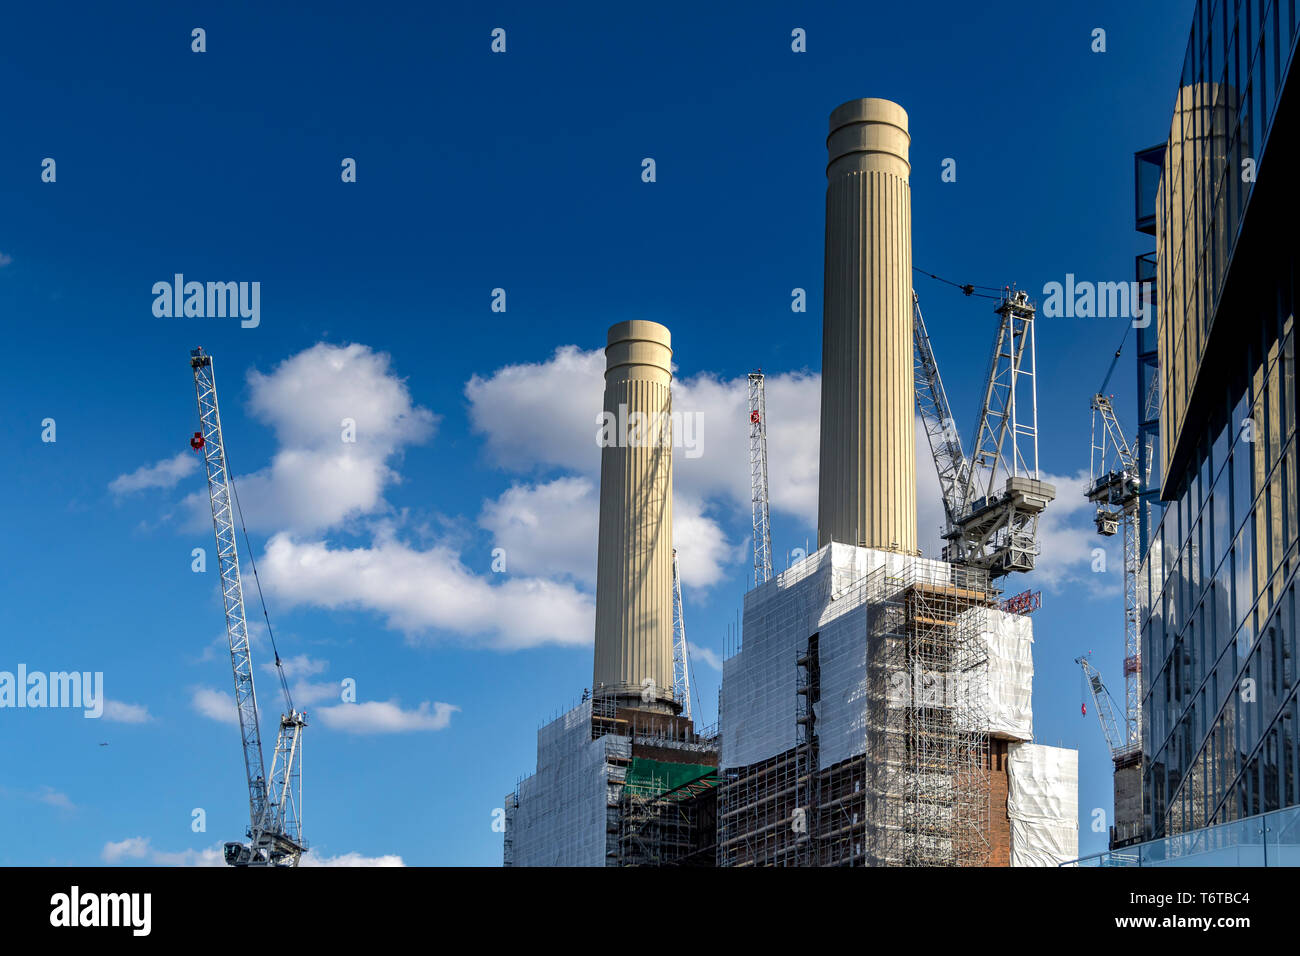 The reconstructed Chimneys of Battersea Power Station currently undergoing major construction work in a multi billion pond redevelopment scheme,London - Stock Image